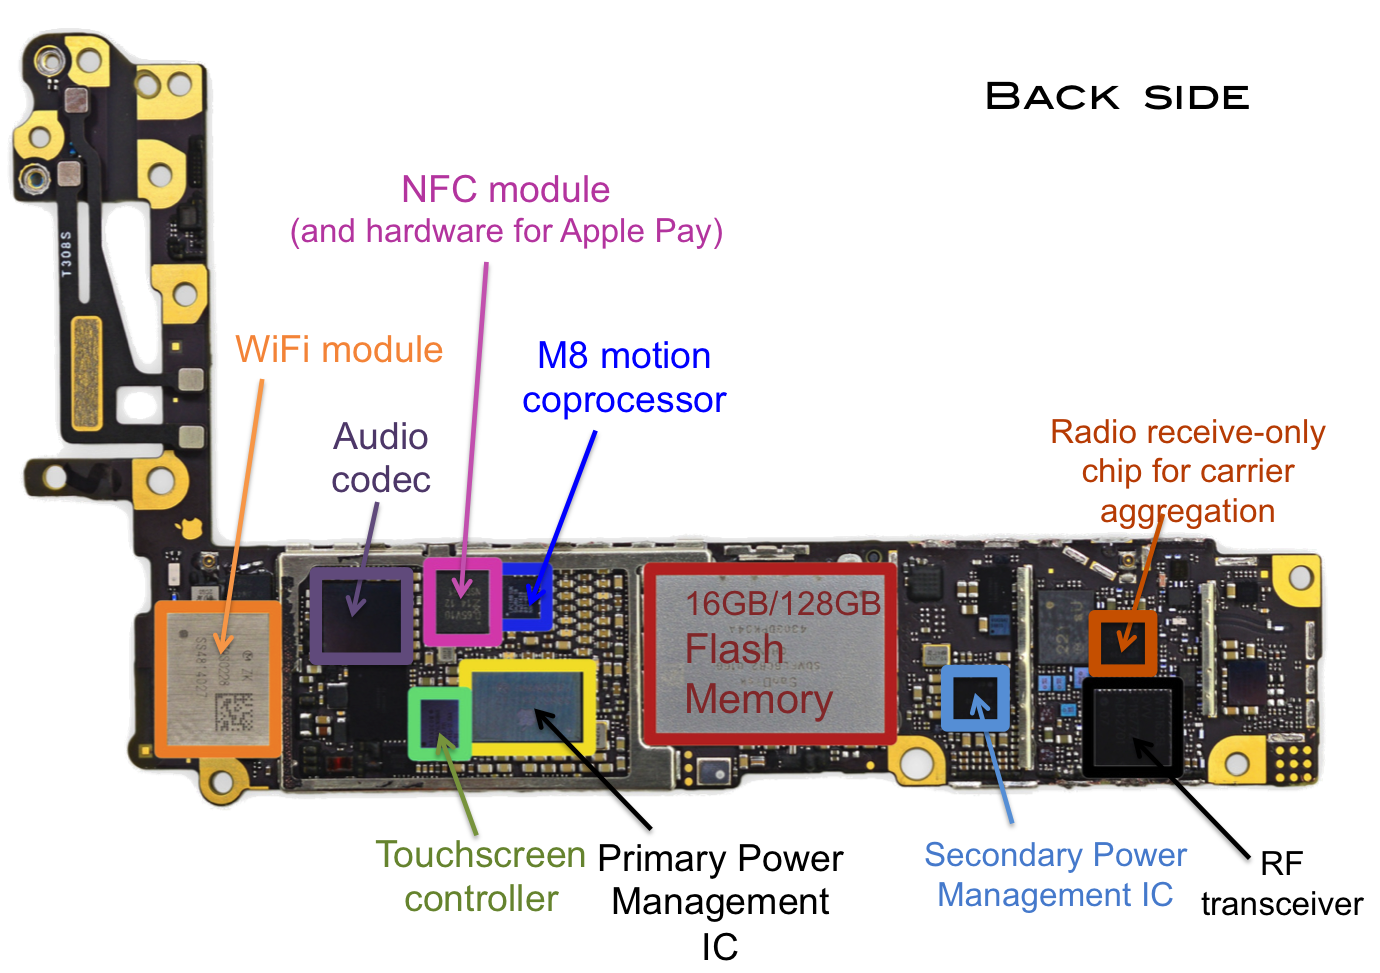 hight resolution of 59 the anatomy of an iphone 6 qnovo rh qnovo com ipad 2 logic board diagram ipad 2 logic board diagram